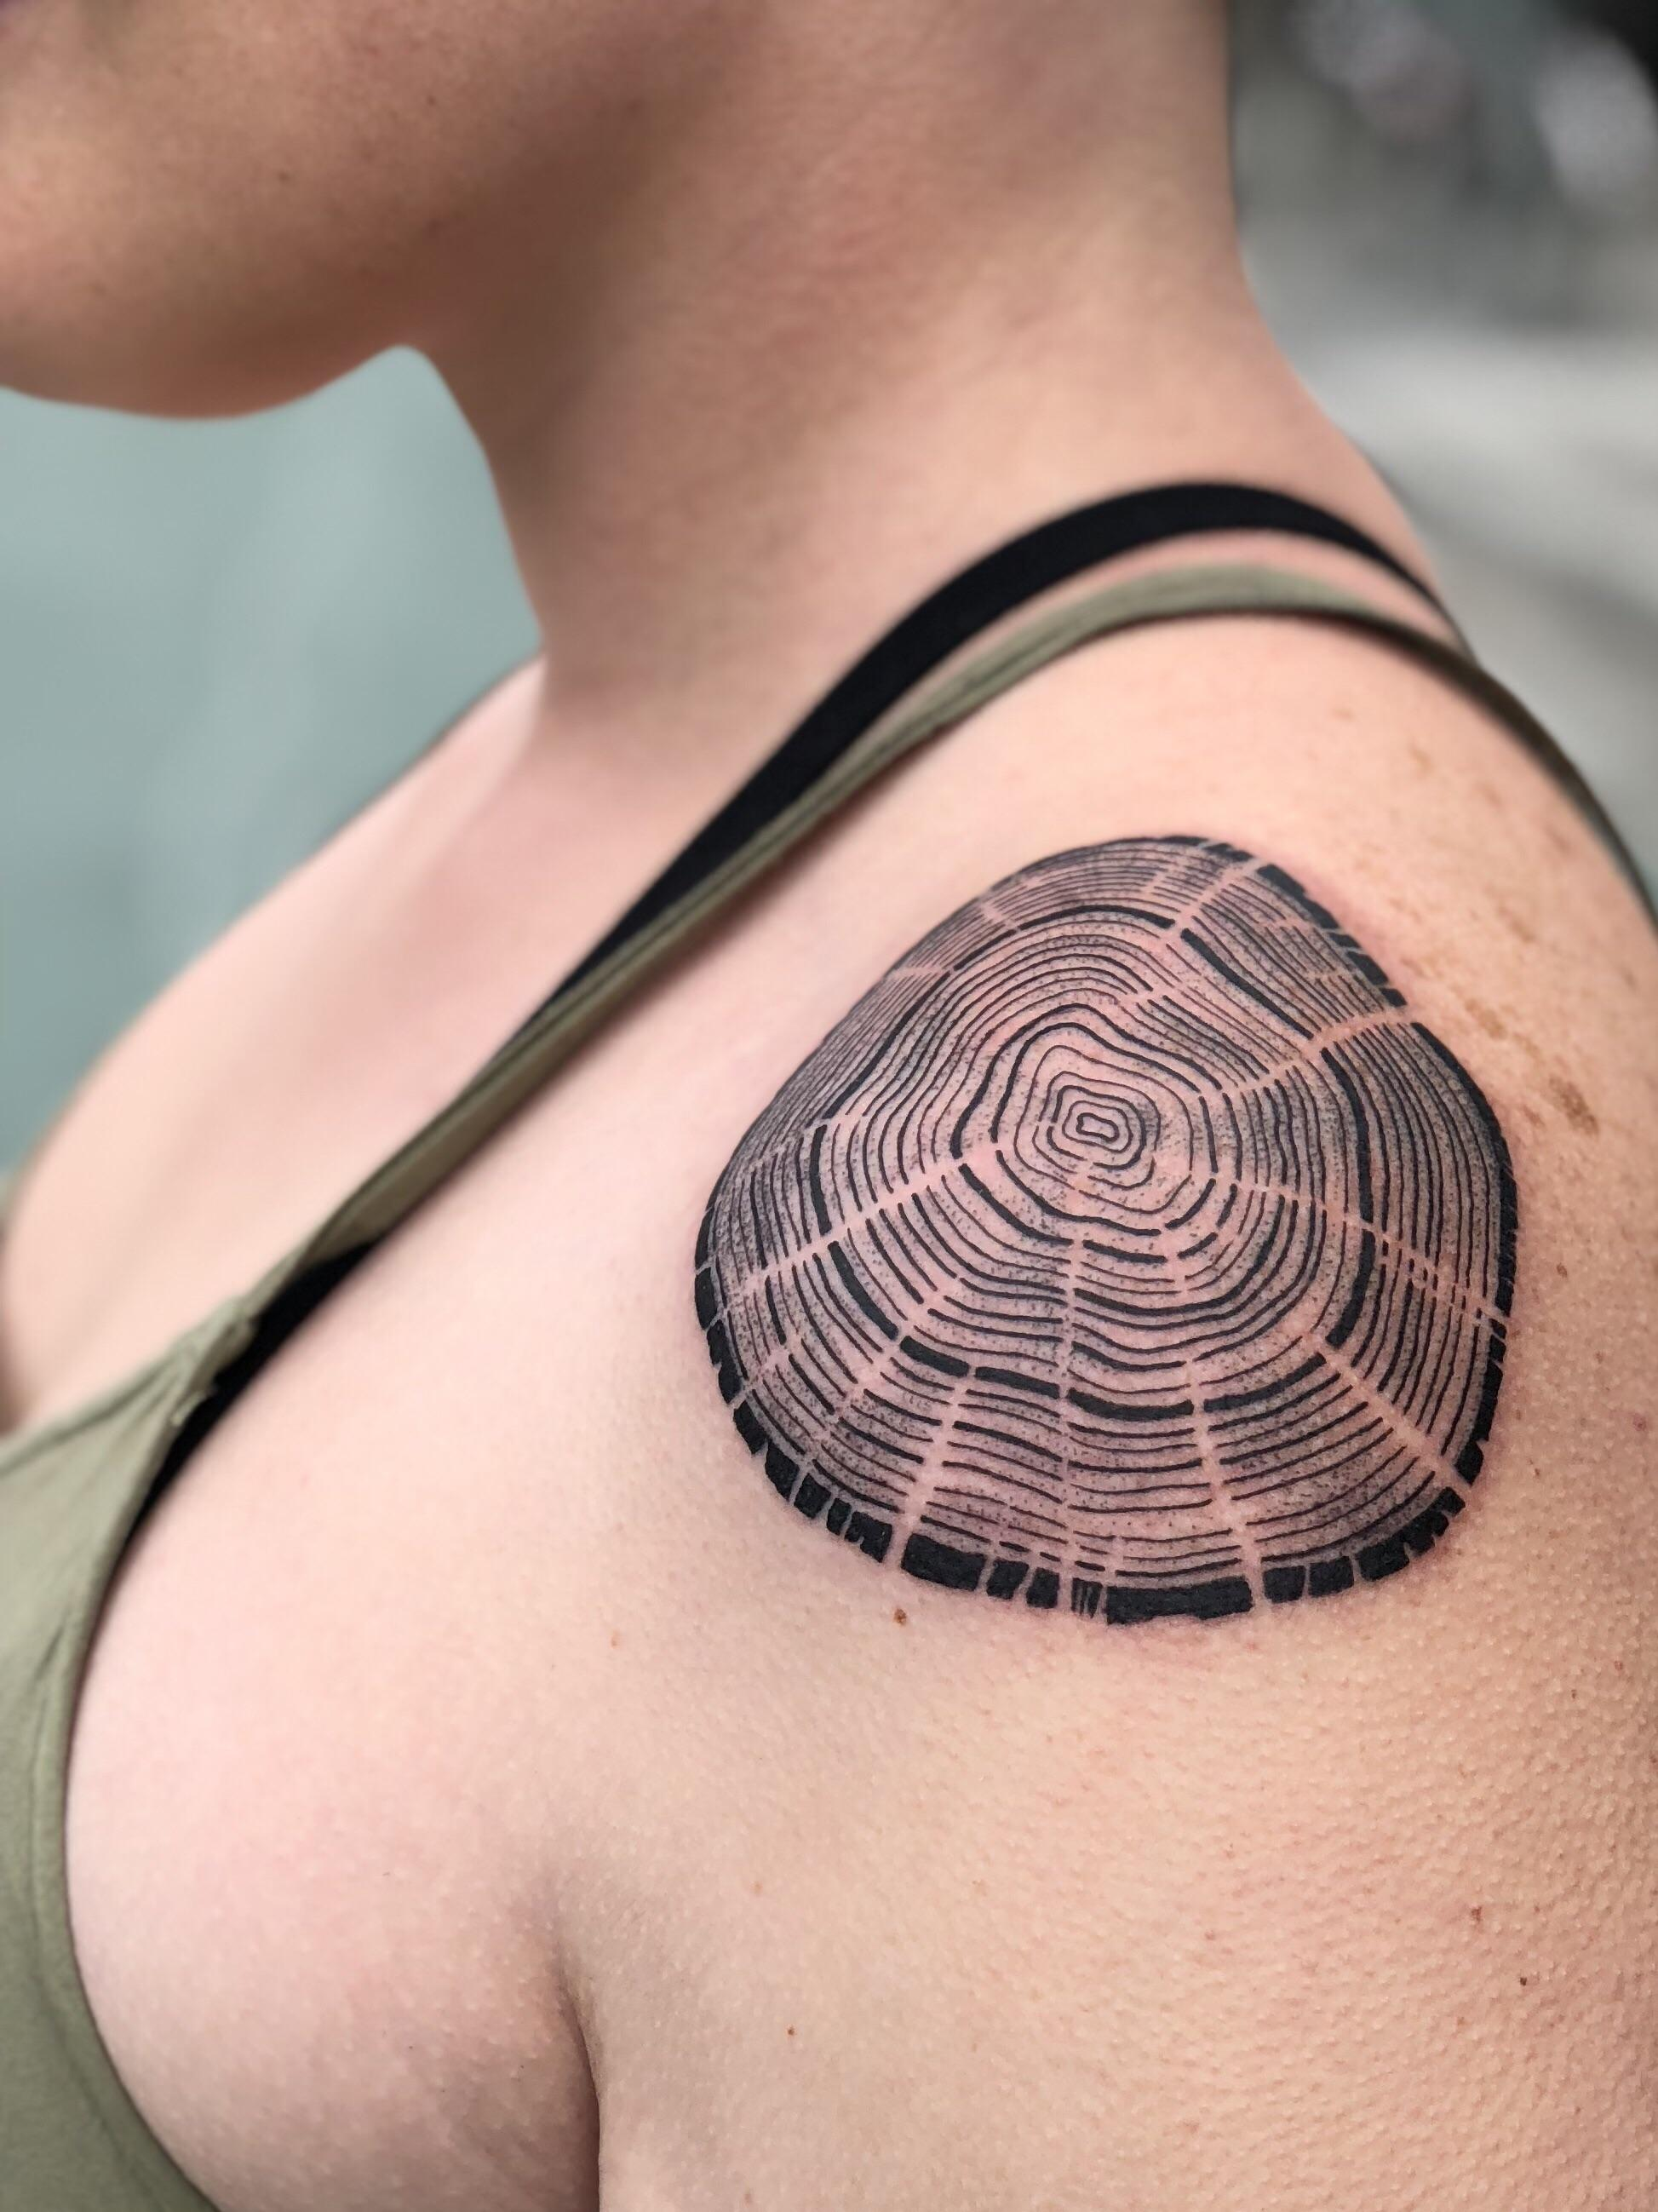 Tree Rings Tattoo : rings, tattoo, Rings, Reynold, Castro, Tattoo, Francisco, Tattoos